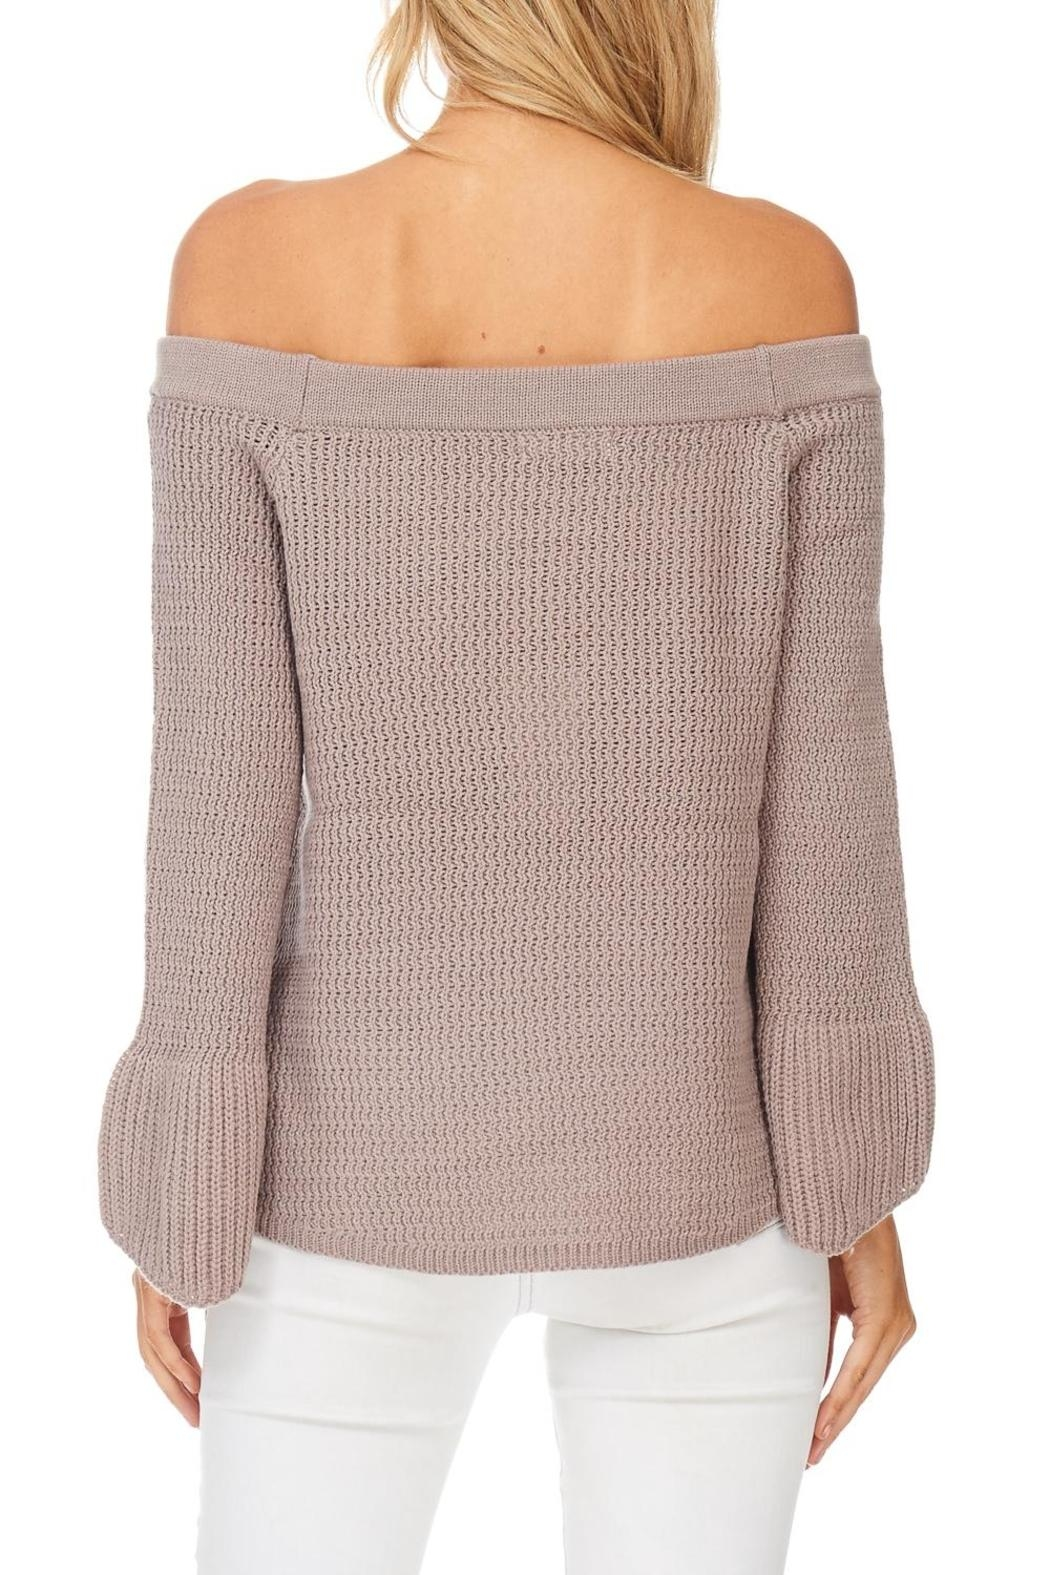 LoveRiche Mocha Off Shoulder Sweater - Side Cropped Image